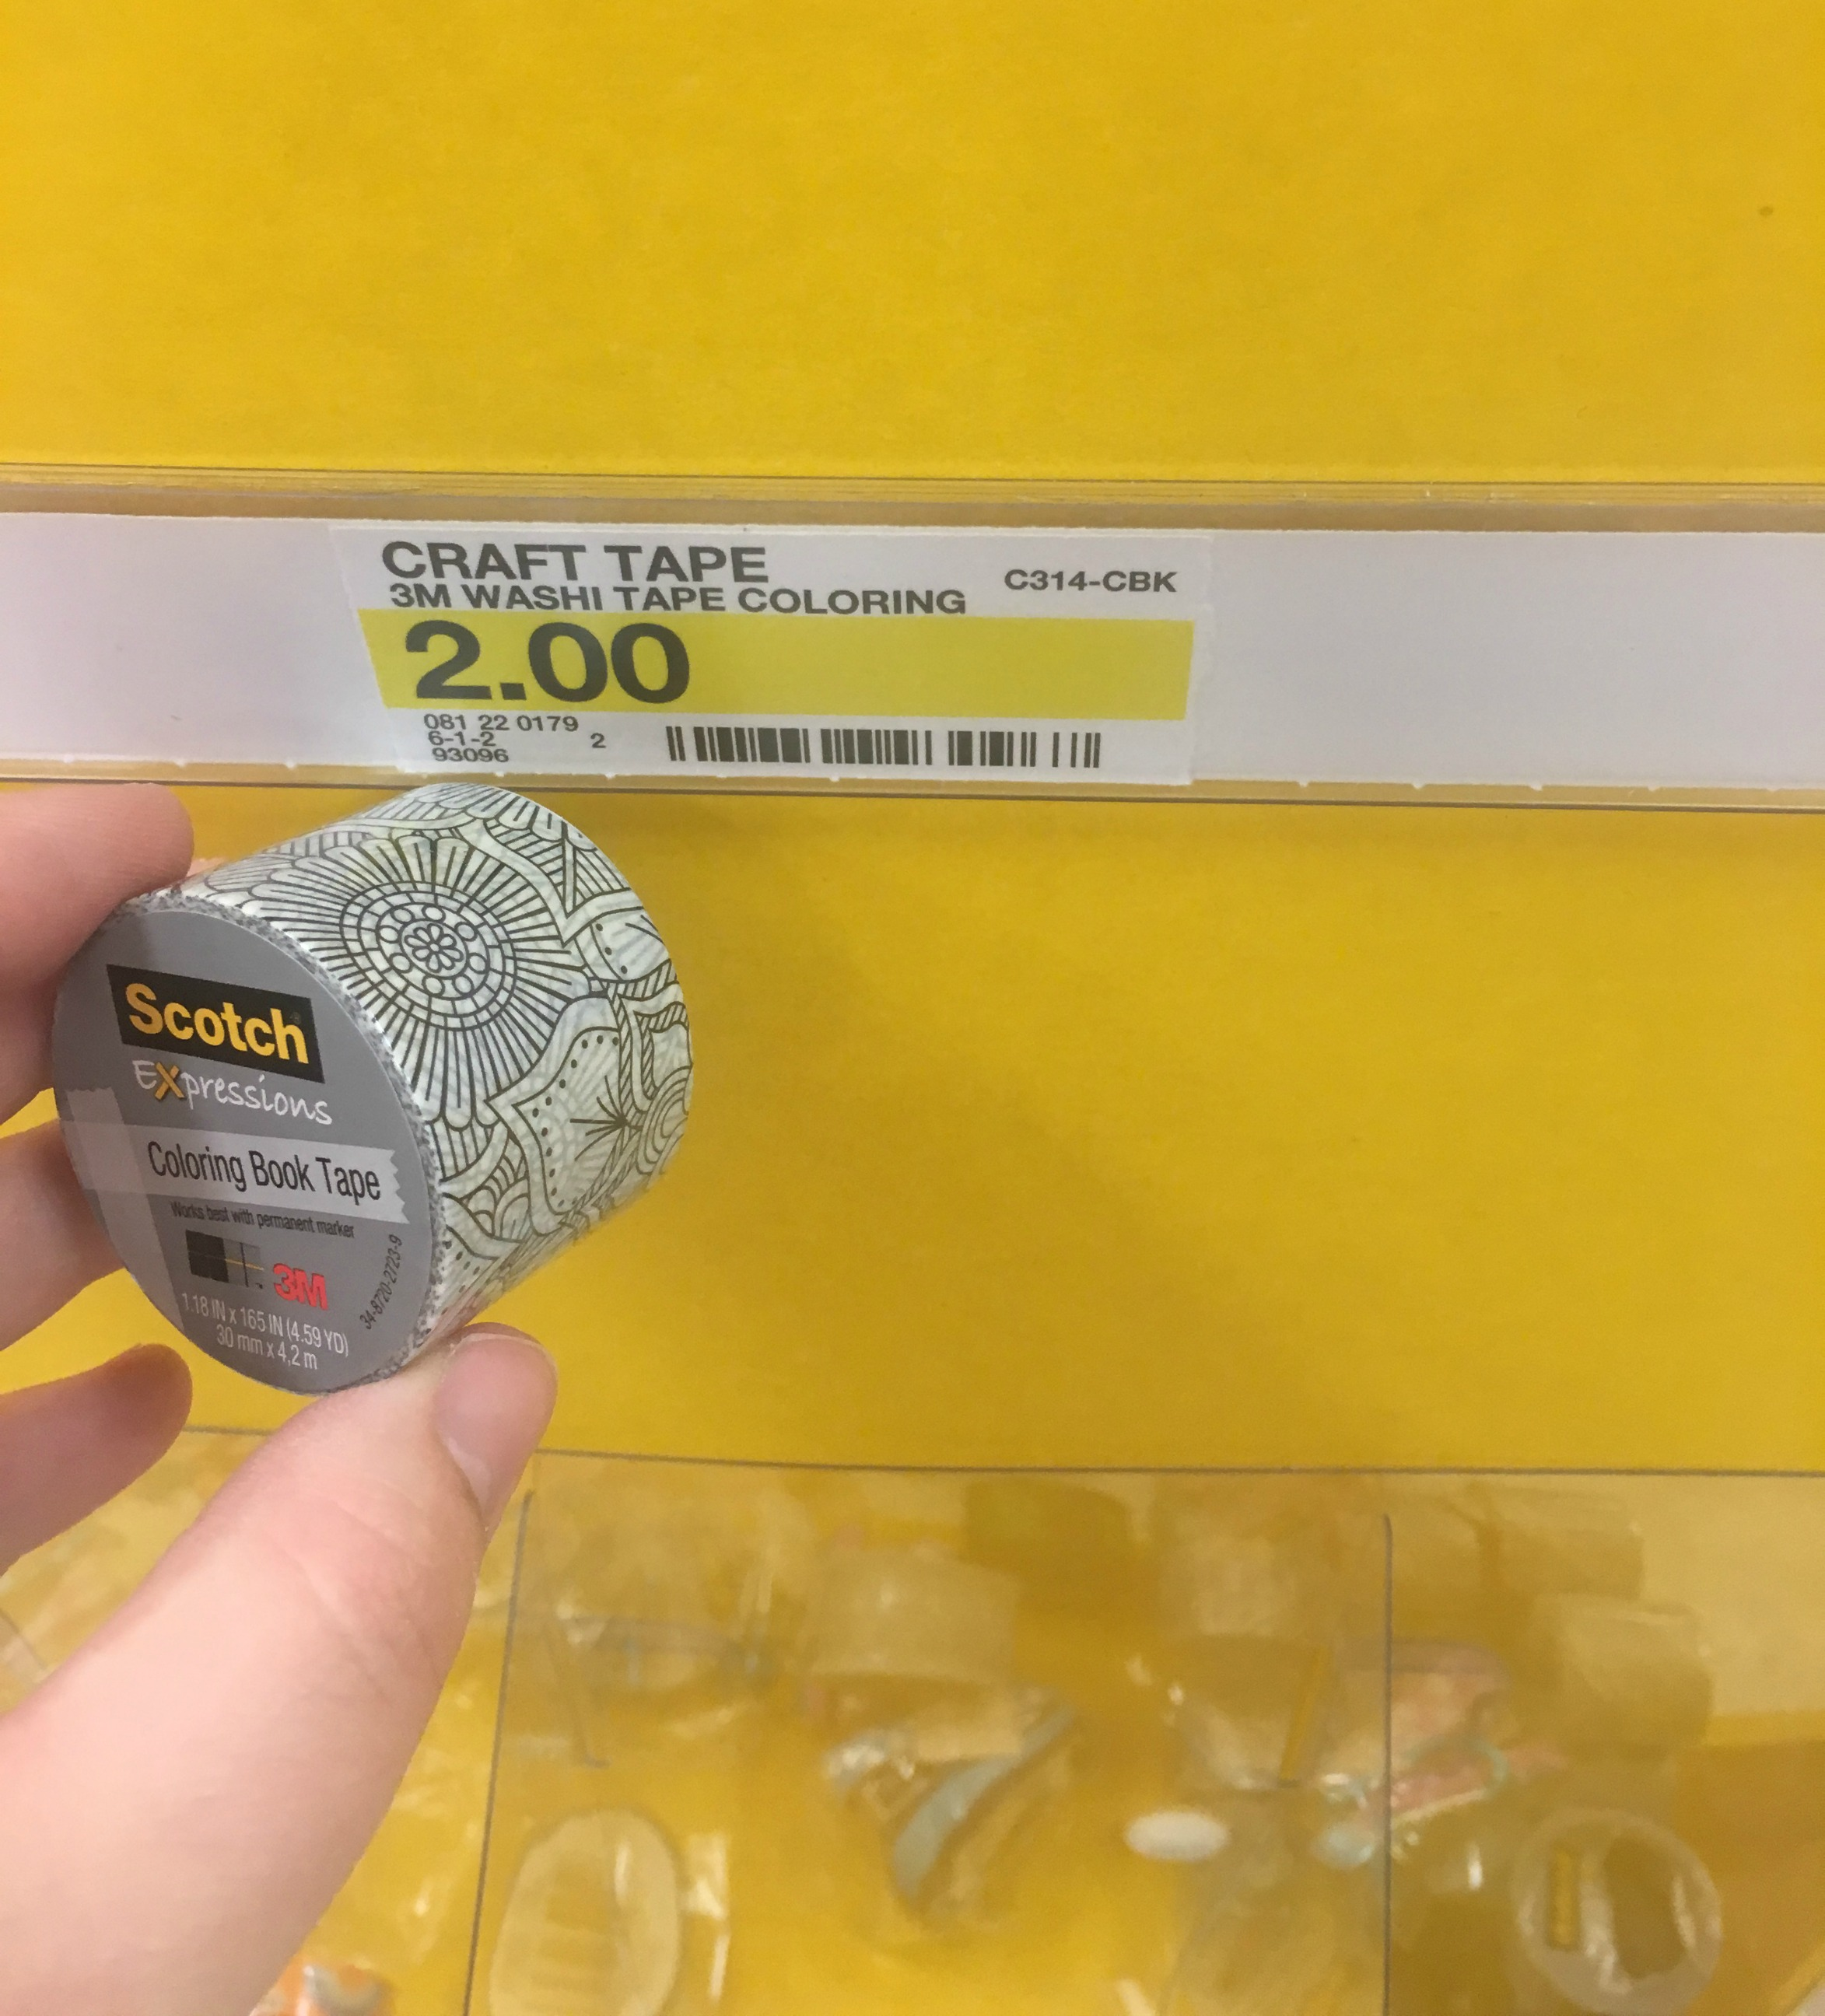 Target FREE Scotch Expressions Coloring Book Washi Tape